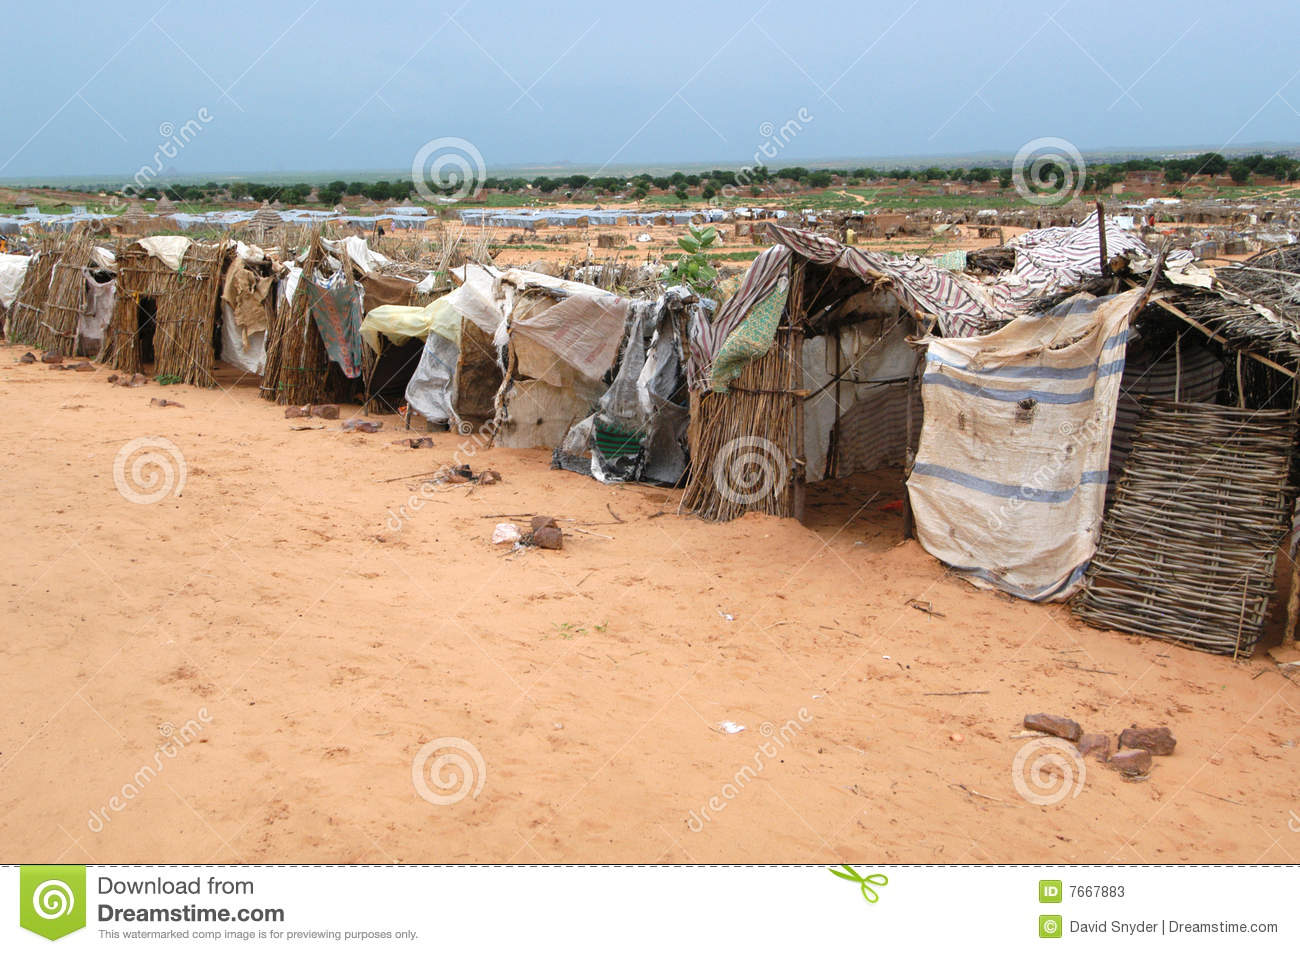 Shelters in Darfur